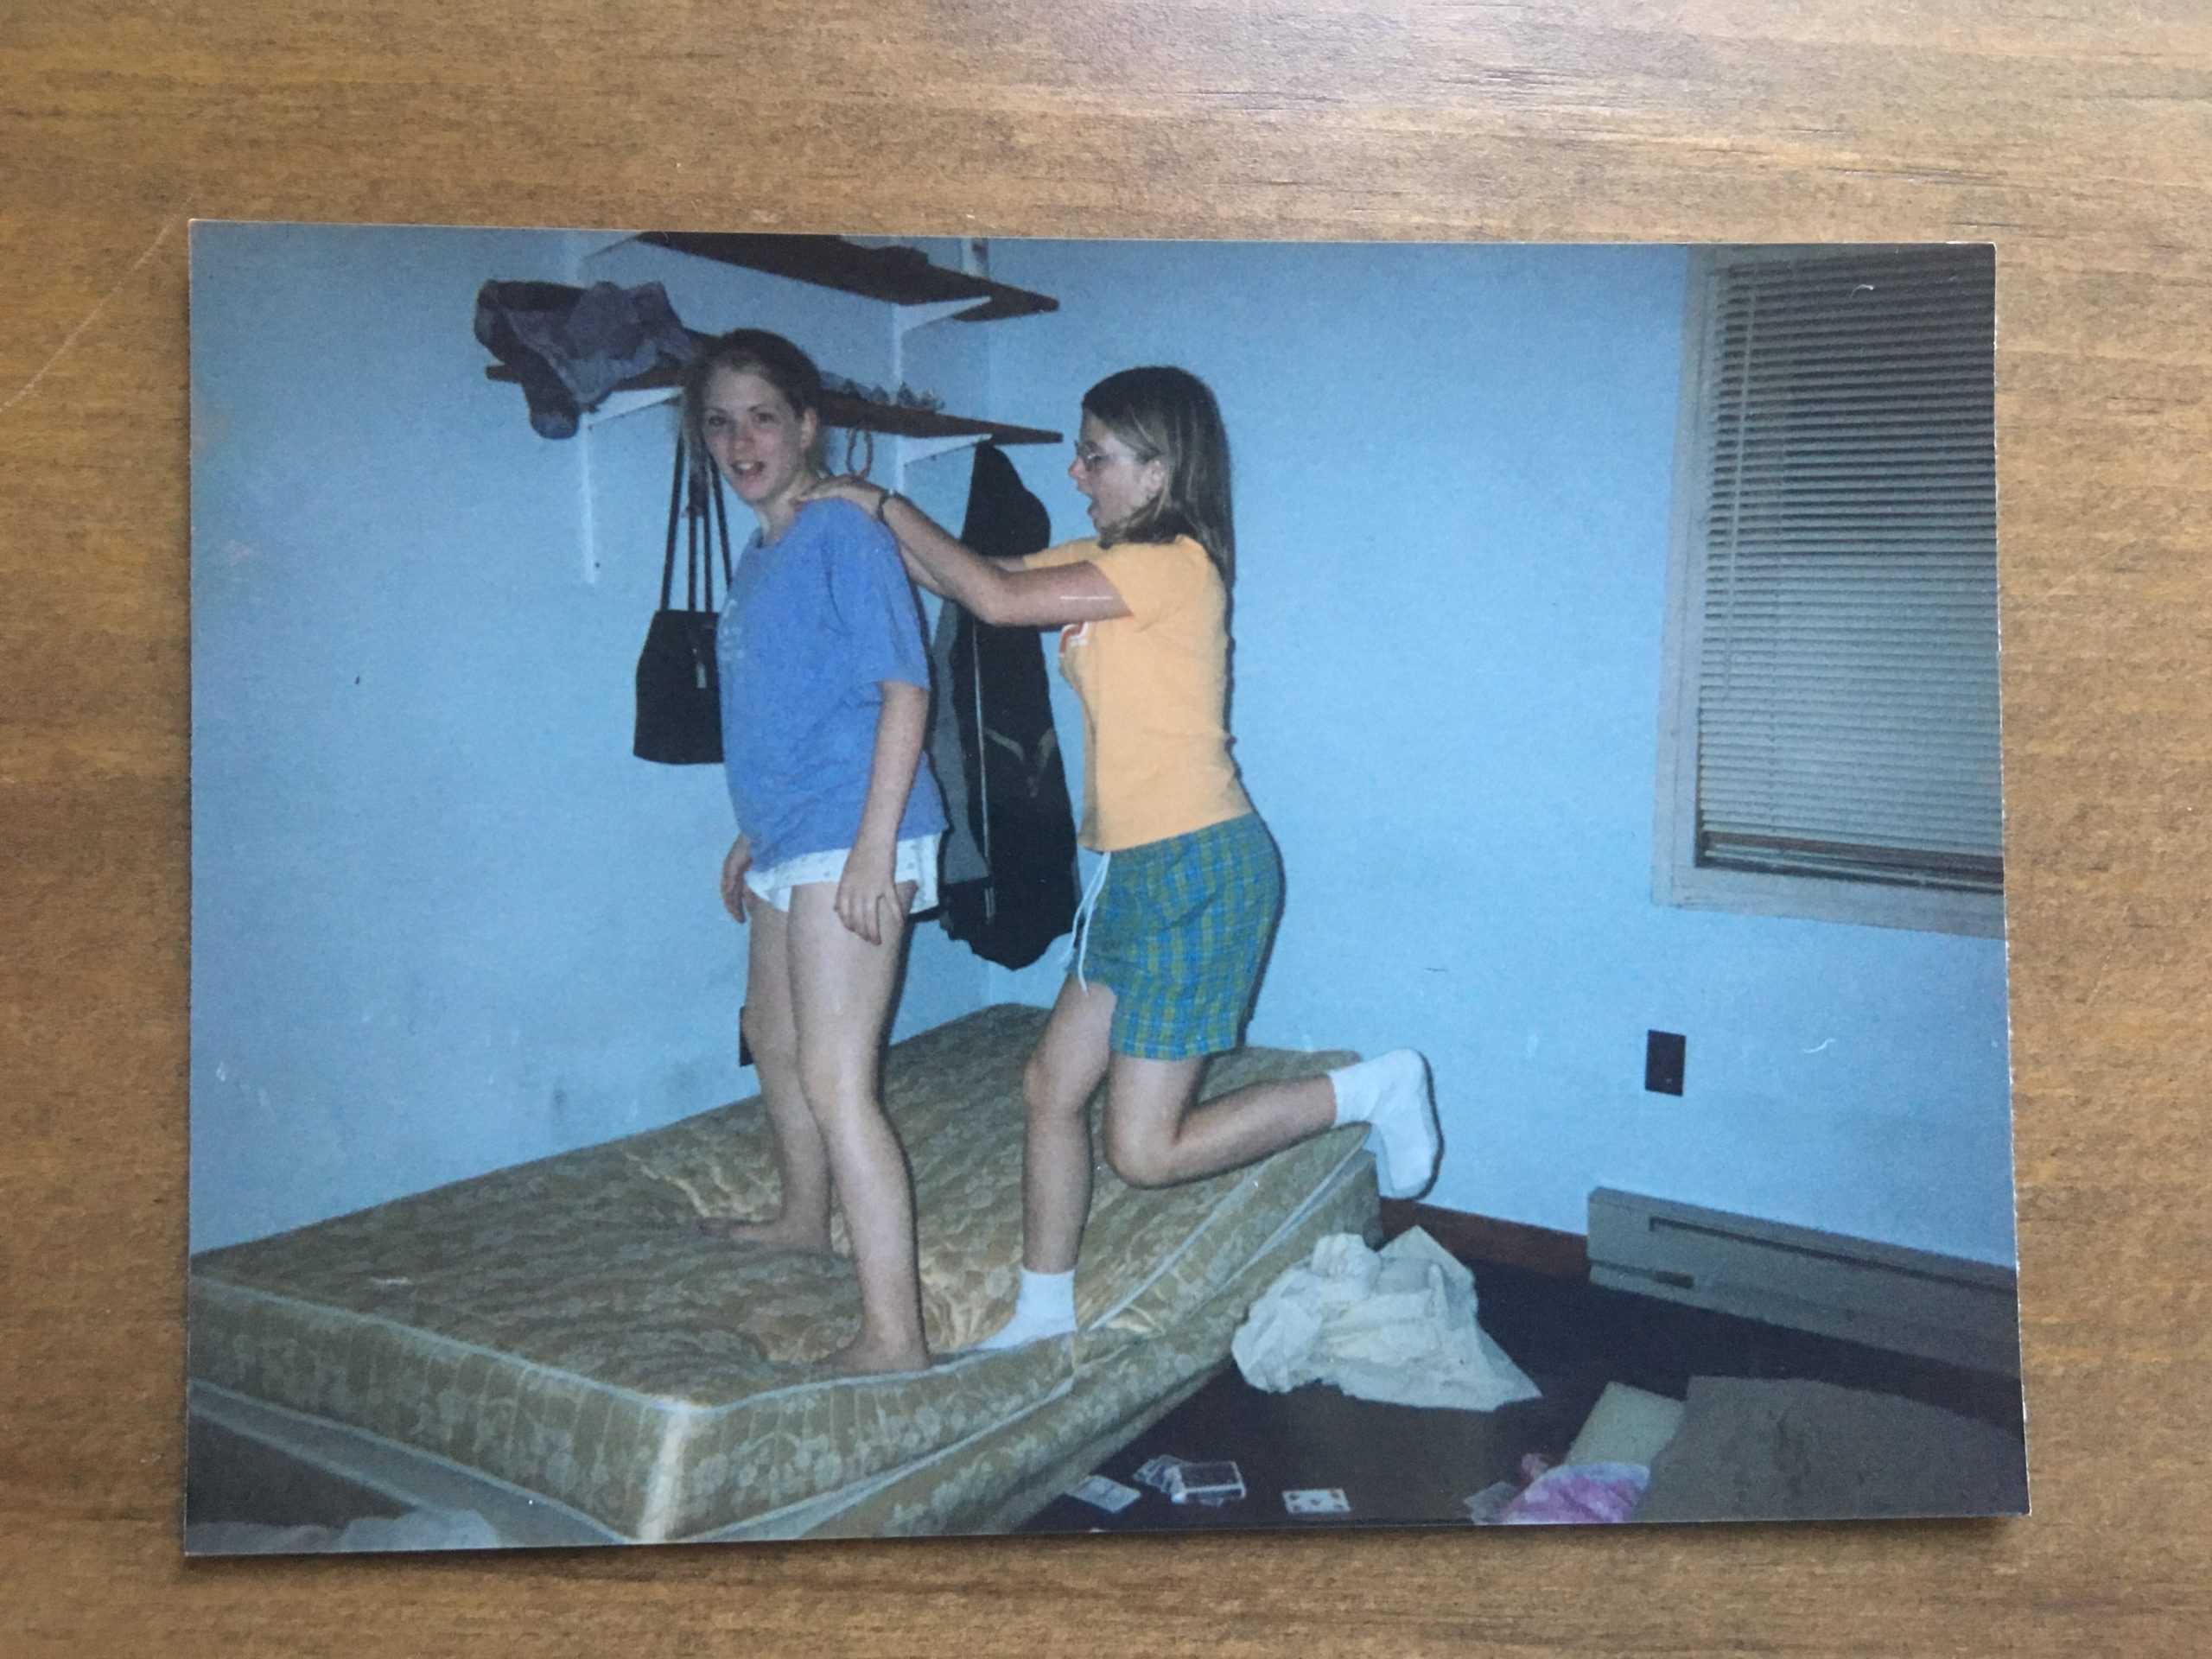 How my childhood experiences influence the way I photograph families